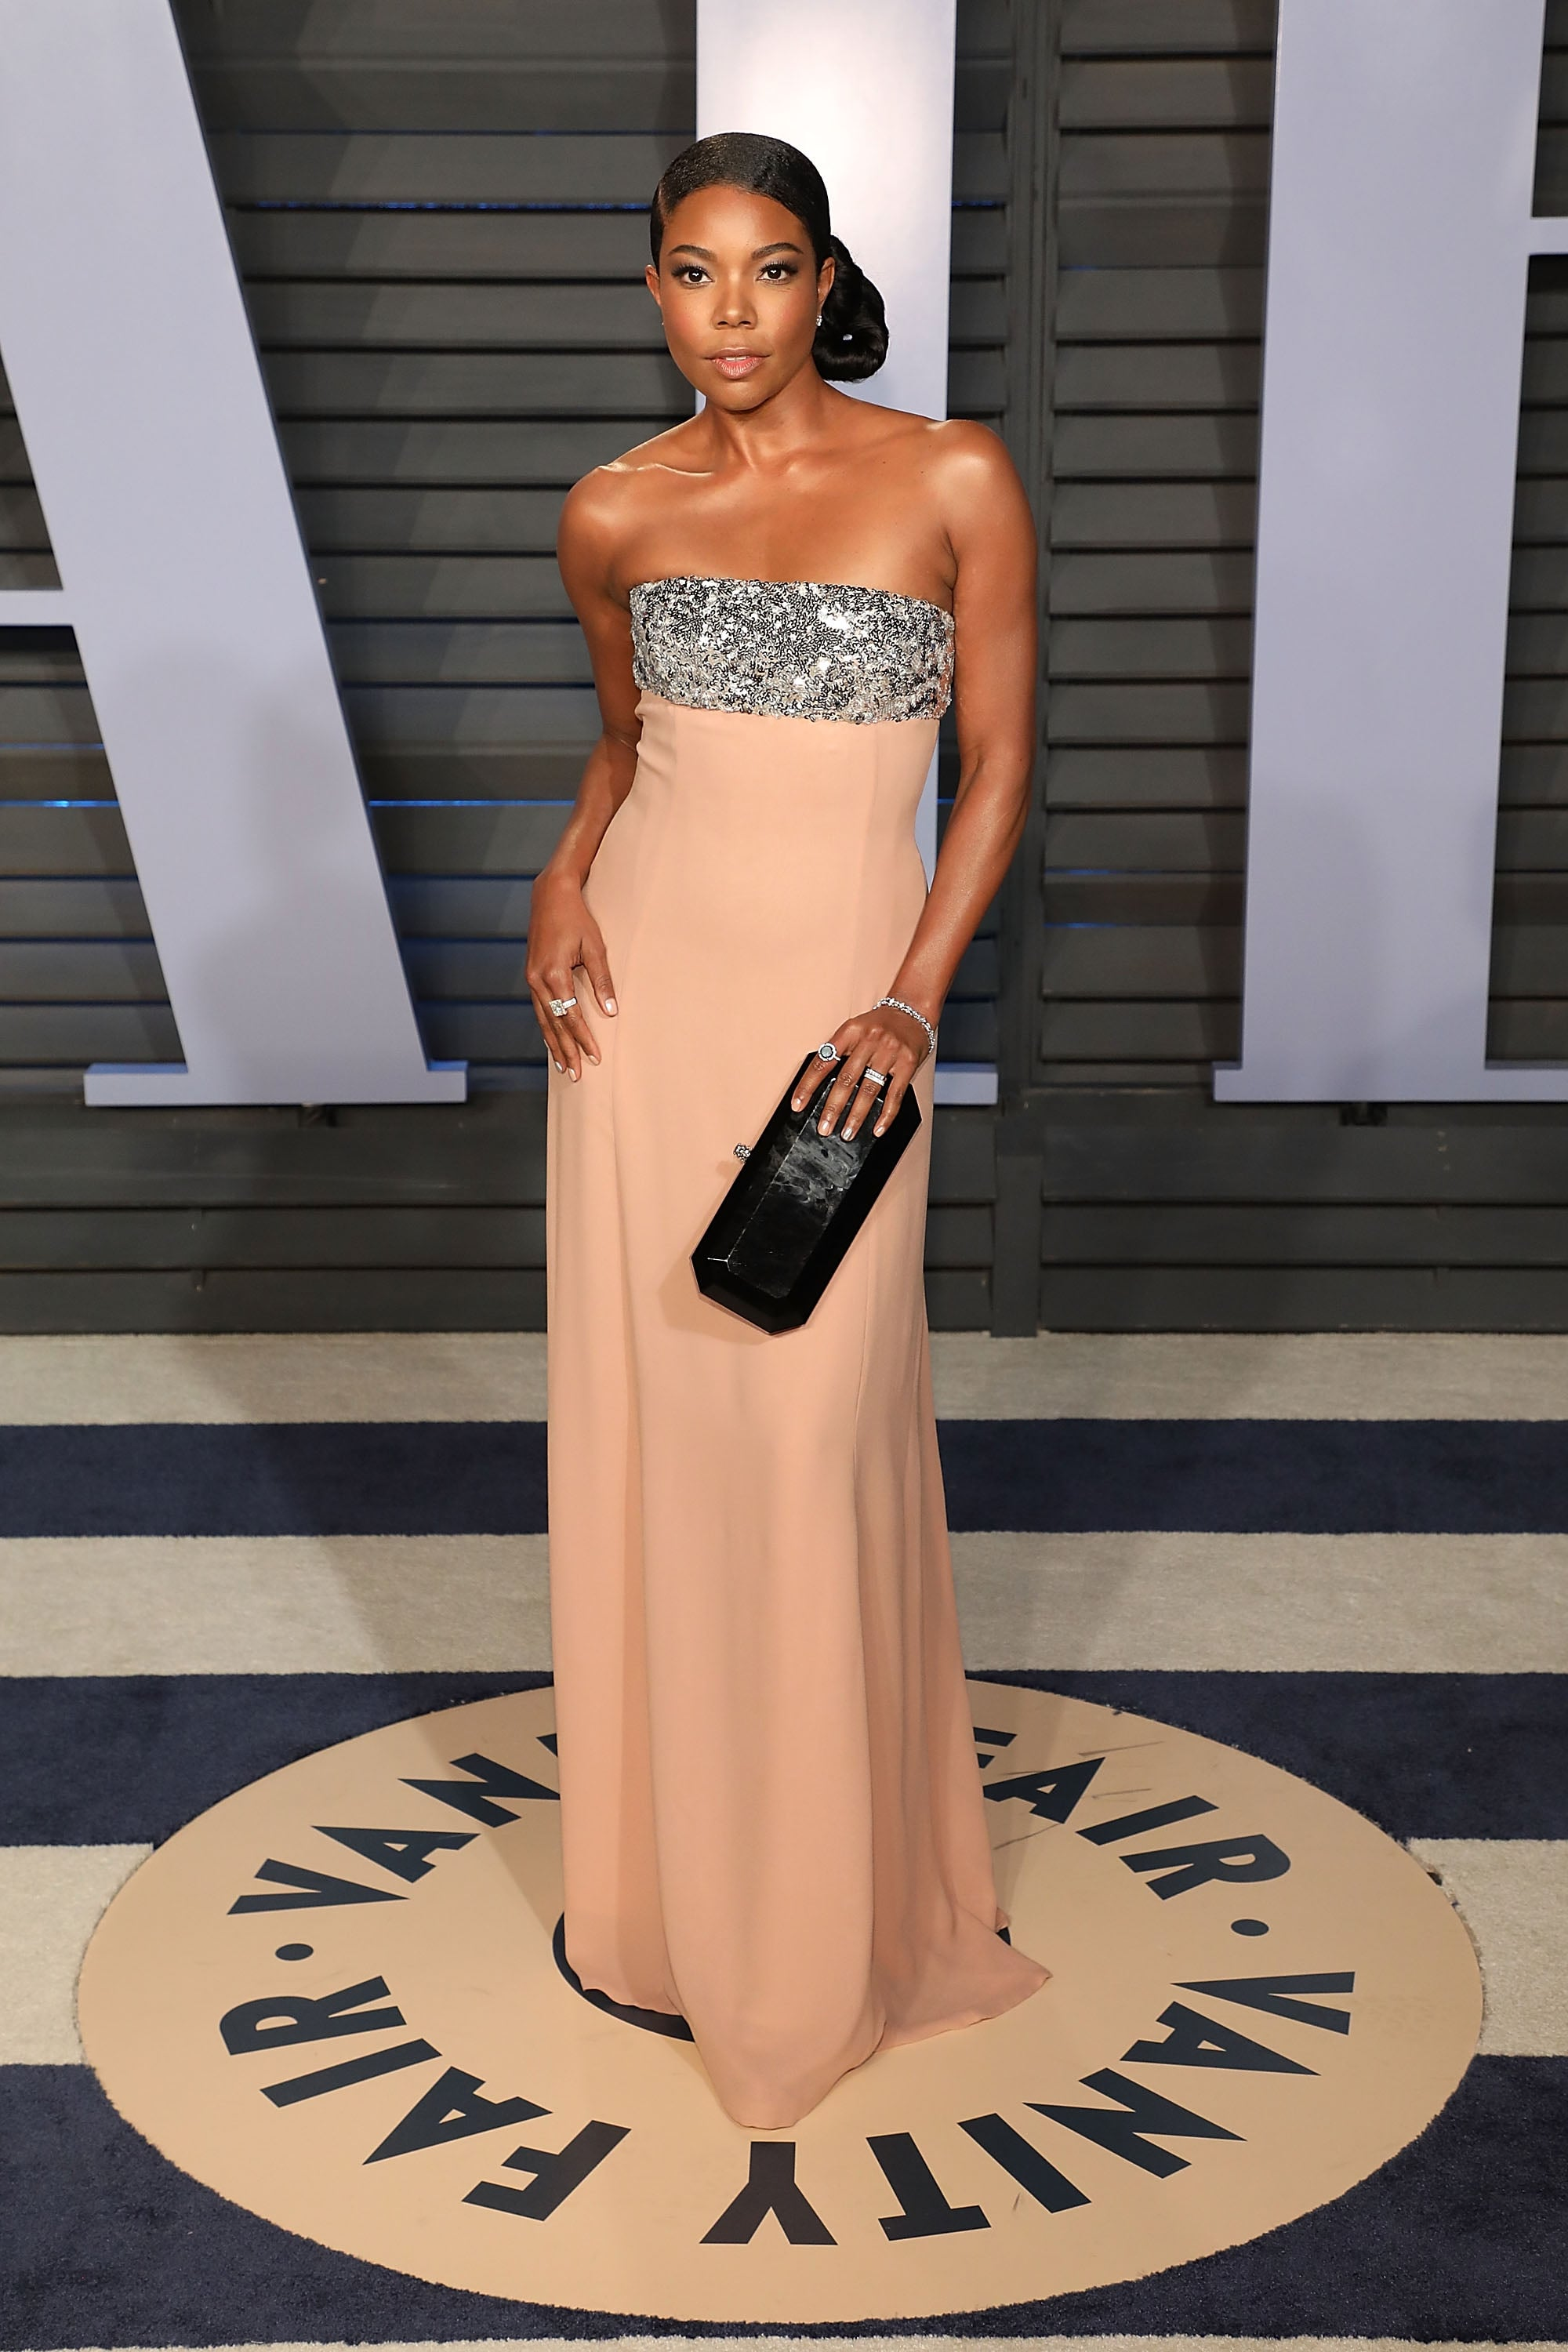 BEVERLY HILLS, CA - MARCH 04:  Gabrielle Union attends the 2018 Vanity Fair Oscar Party hosted by Radhika Jones at the Wallis Annenberg Center for the Performing Arts on March 4, 2018 in Beverly Hills, California.  (Photo by Taylor Hill/FilmMagic)